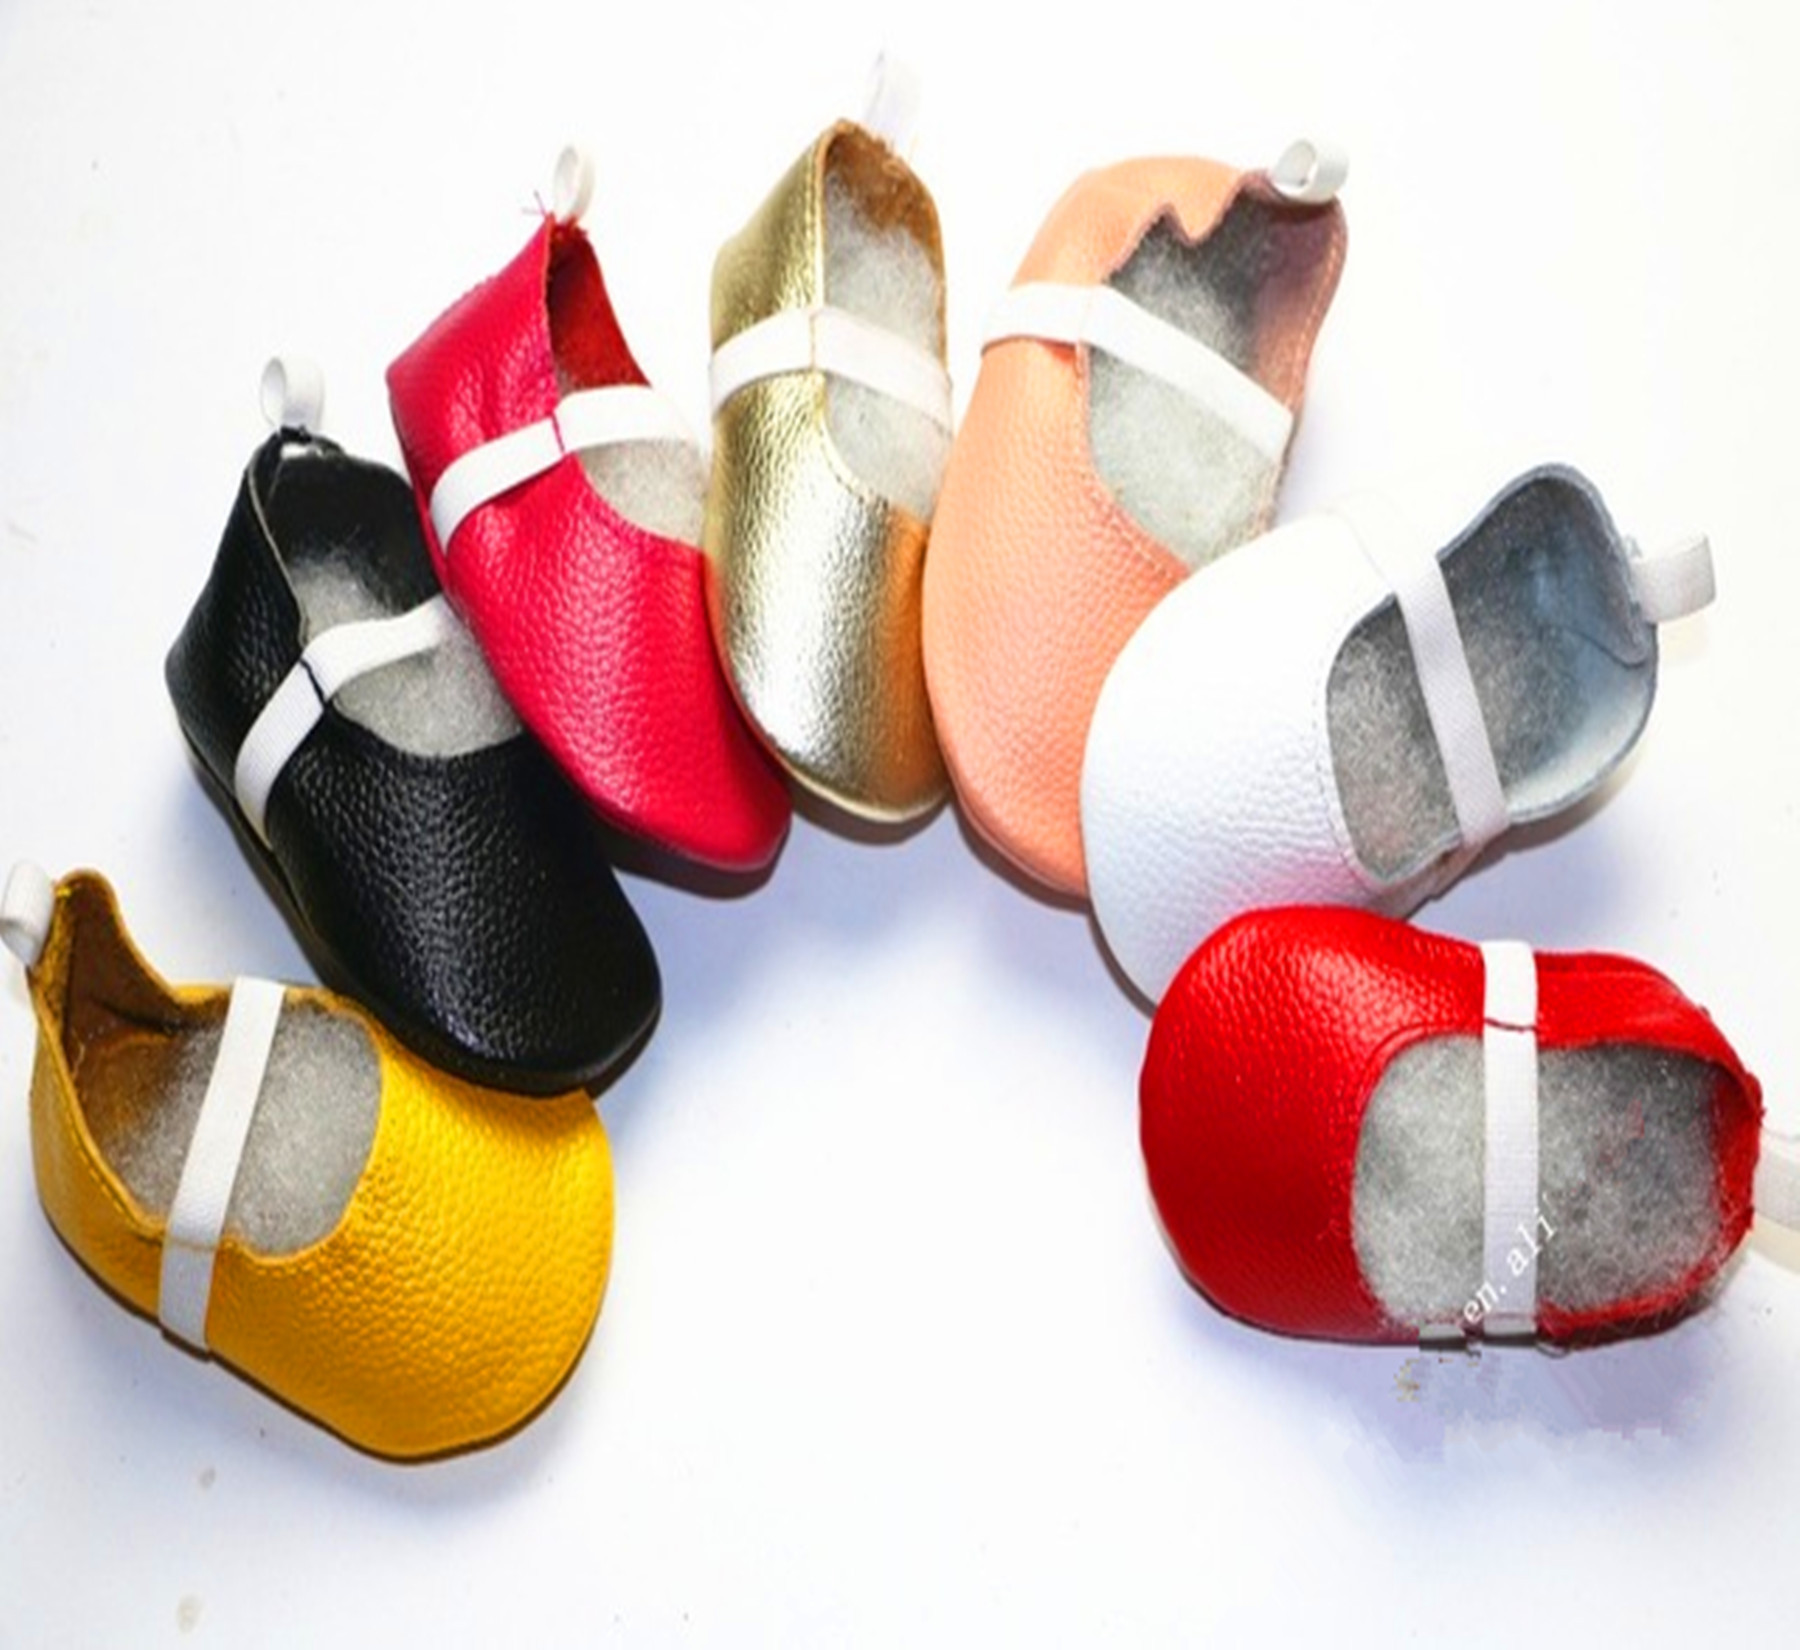 2018 Cute Baby Ballet Shoes Genuine Leather Baby Moccasins Candy Color New Childrens Shoes Princess Toddler Shoes